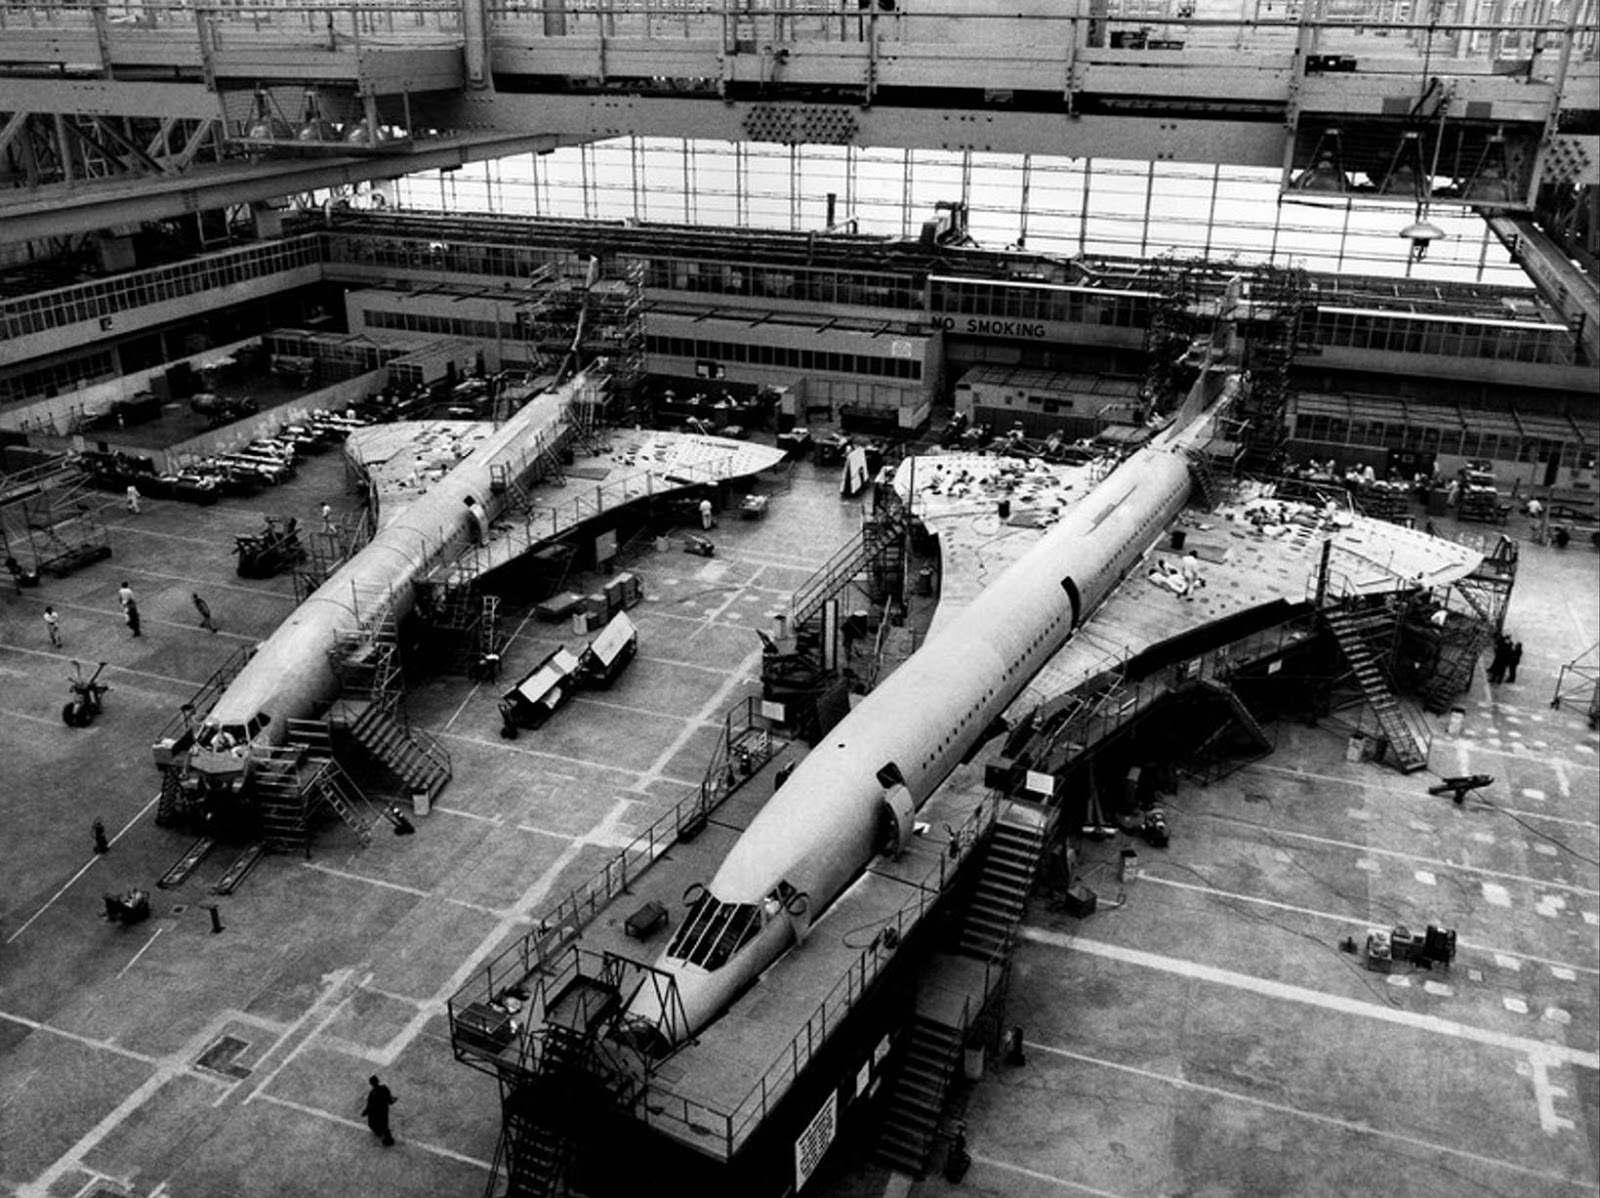 Manufacturing Concorde, the World's First Supersonic Passenger Jet